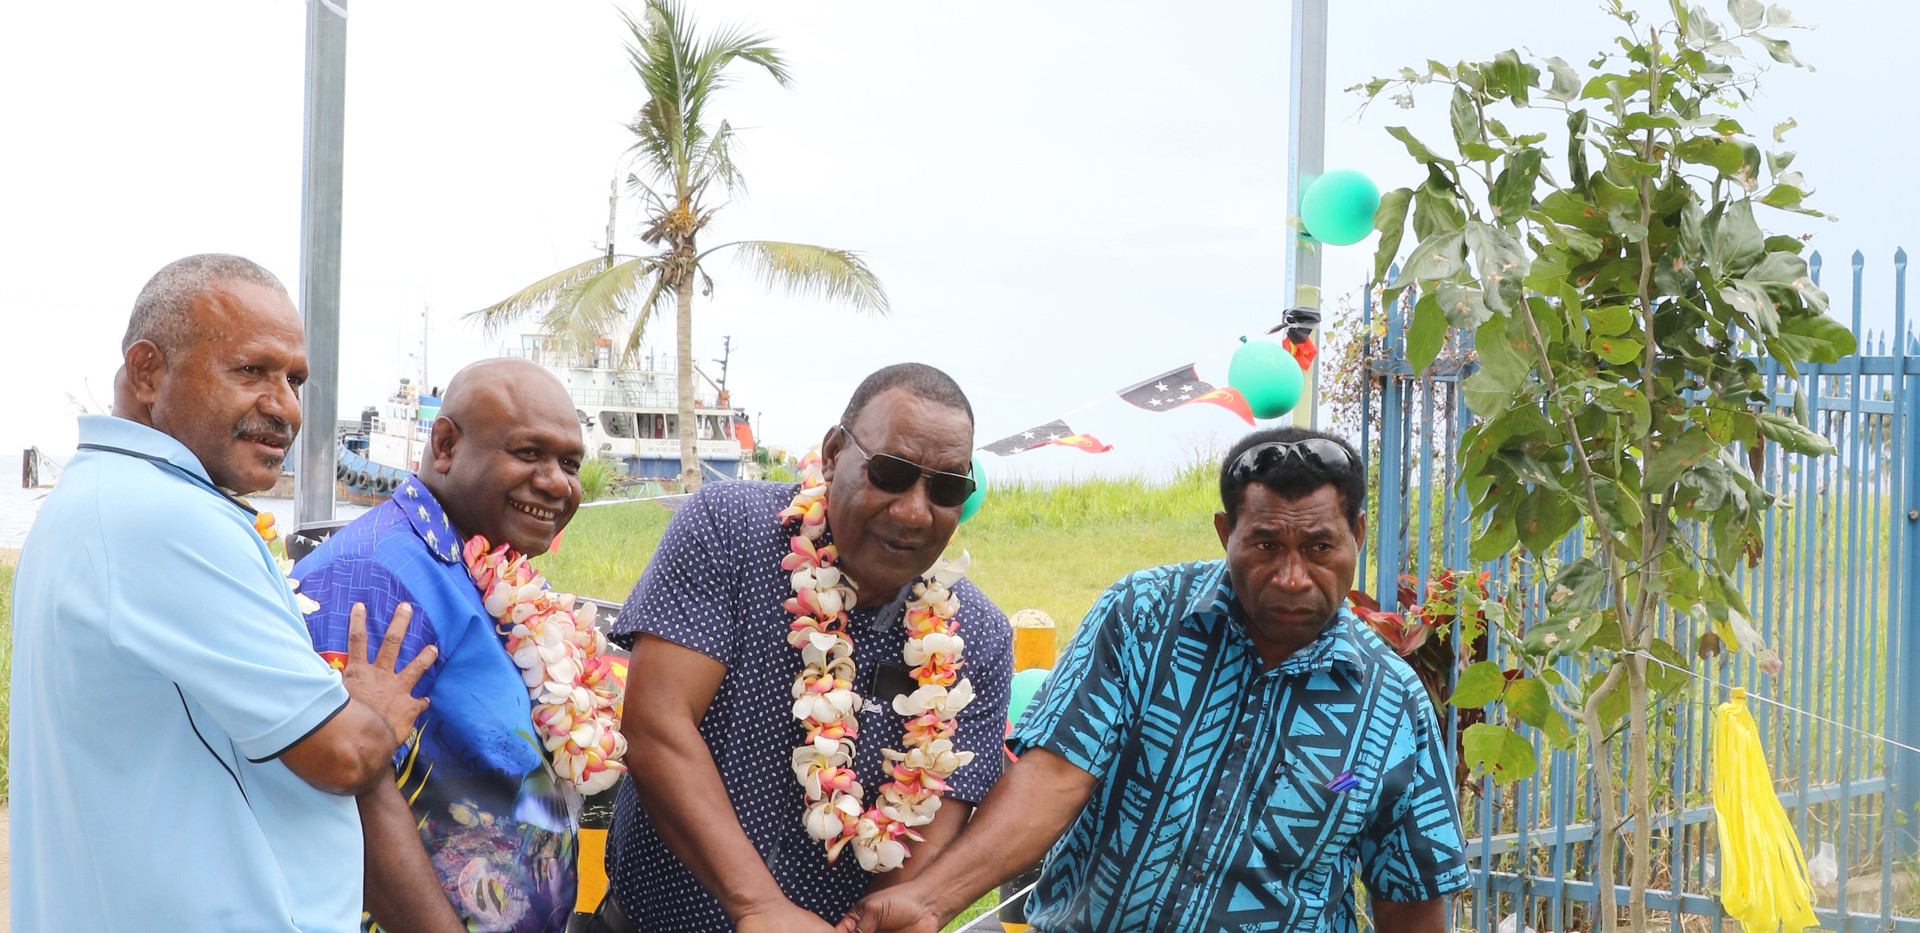 turning of the sod of the Kimbe jetty pr